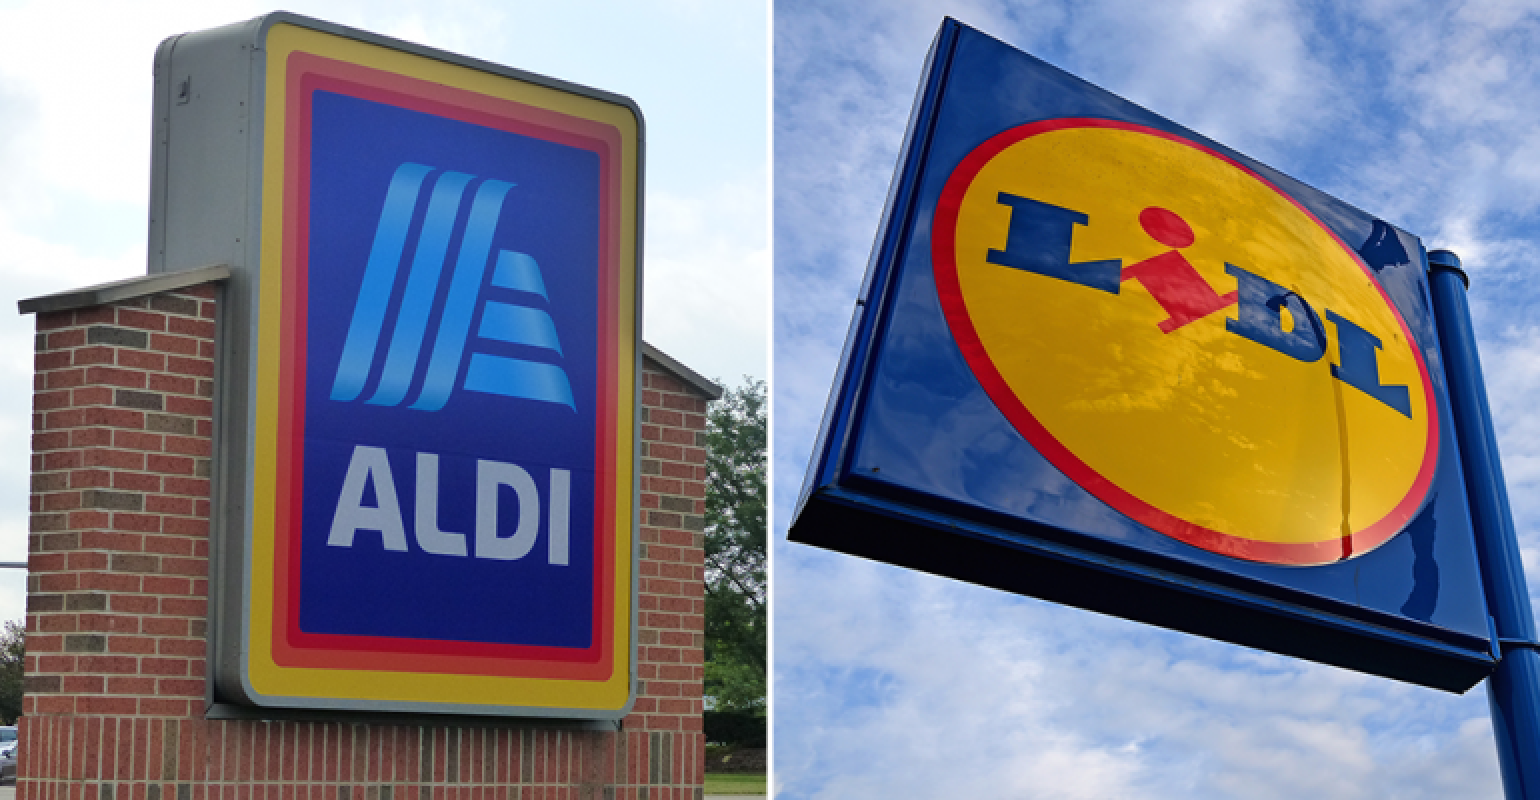 Aldi names Lidl in lawsuit against two ex-employees